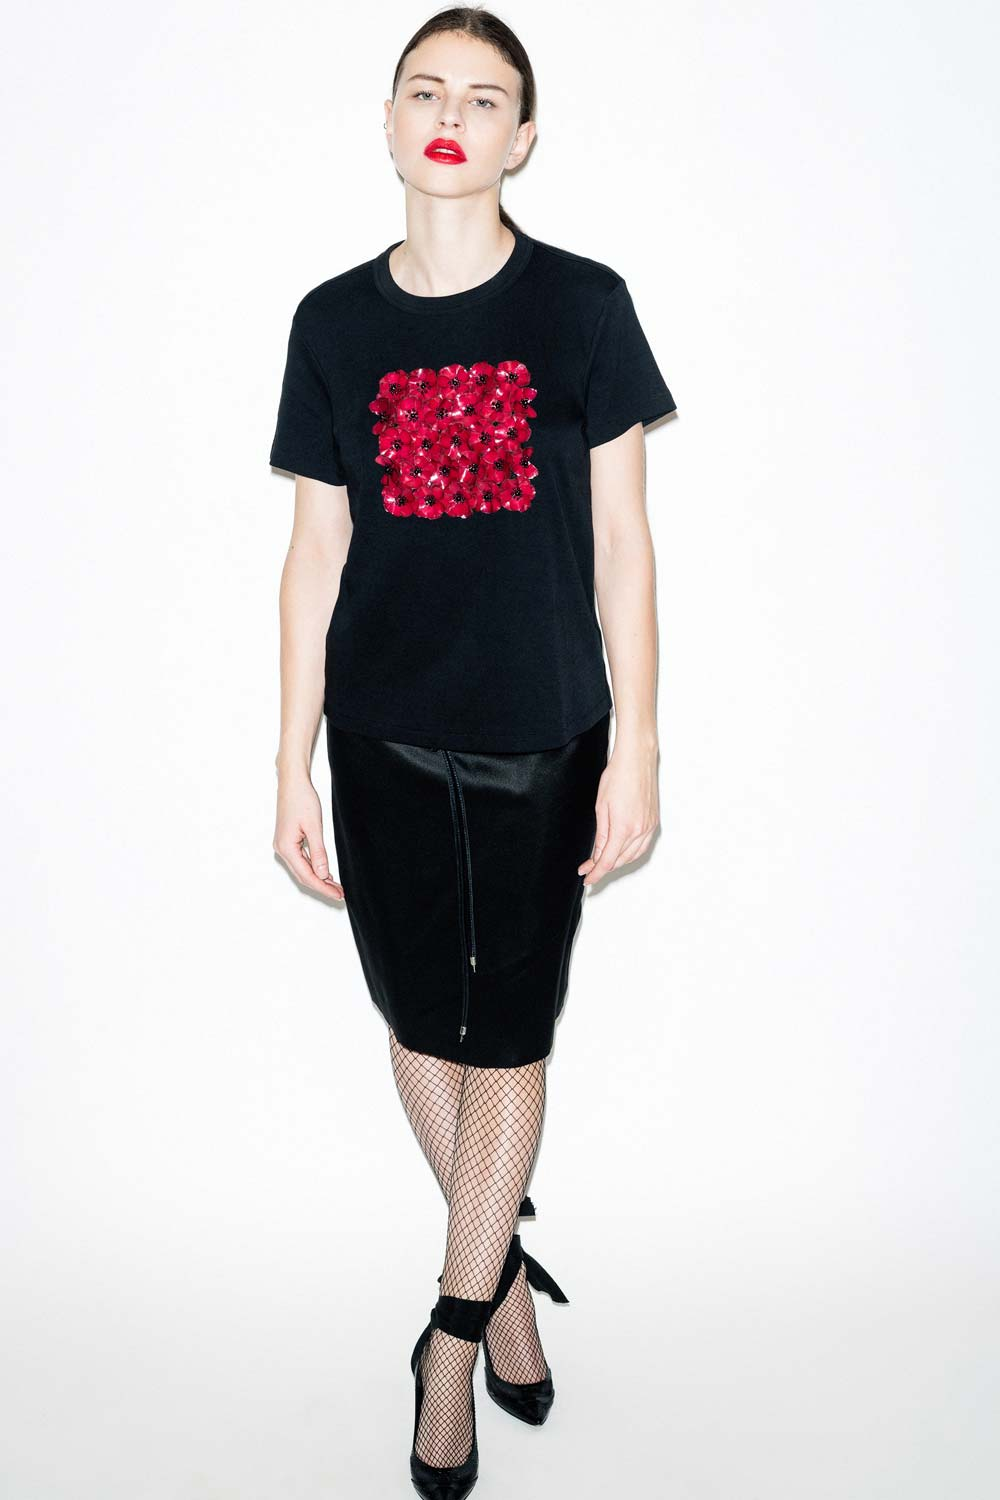 fflag-tee-shirt-poppies-ornement-fleurs-sequins-grenat2